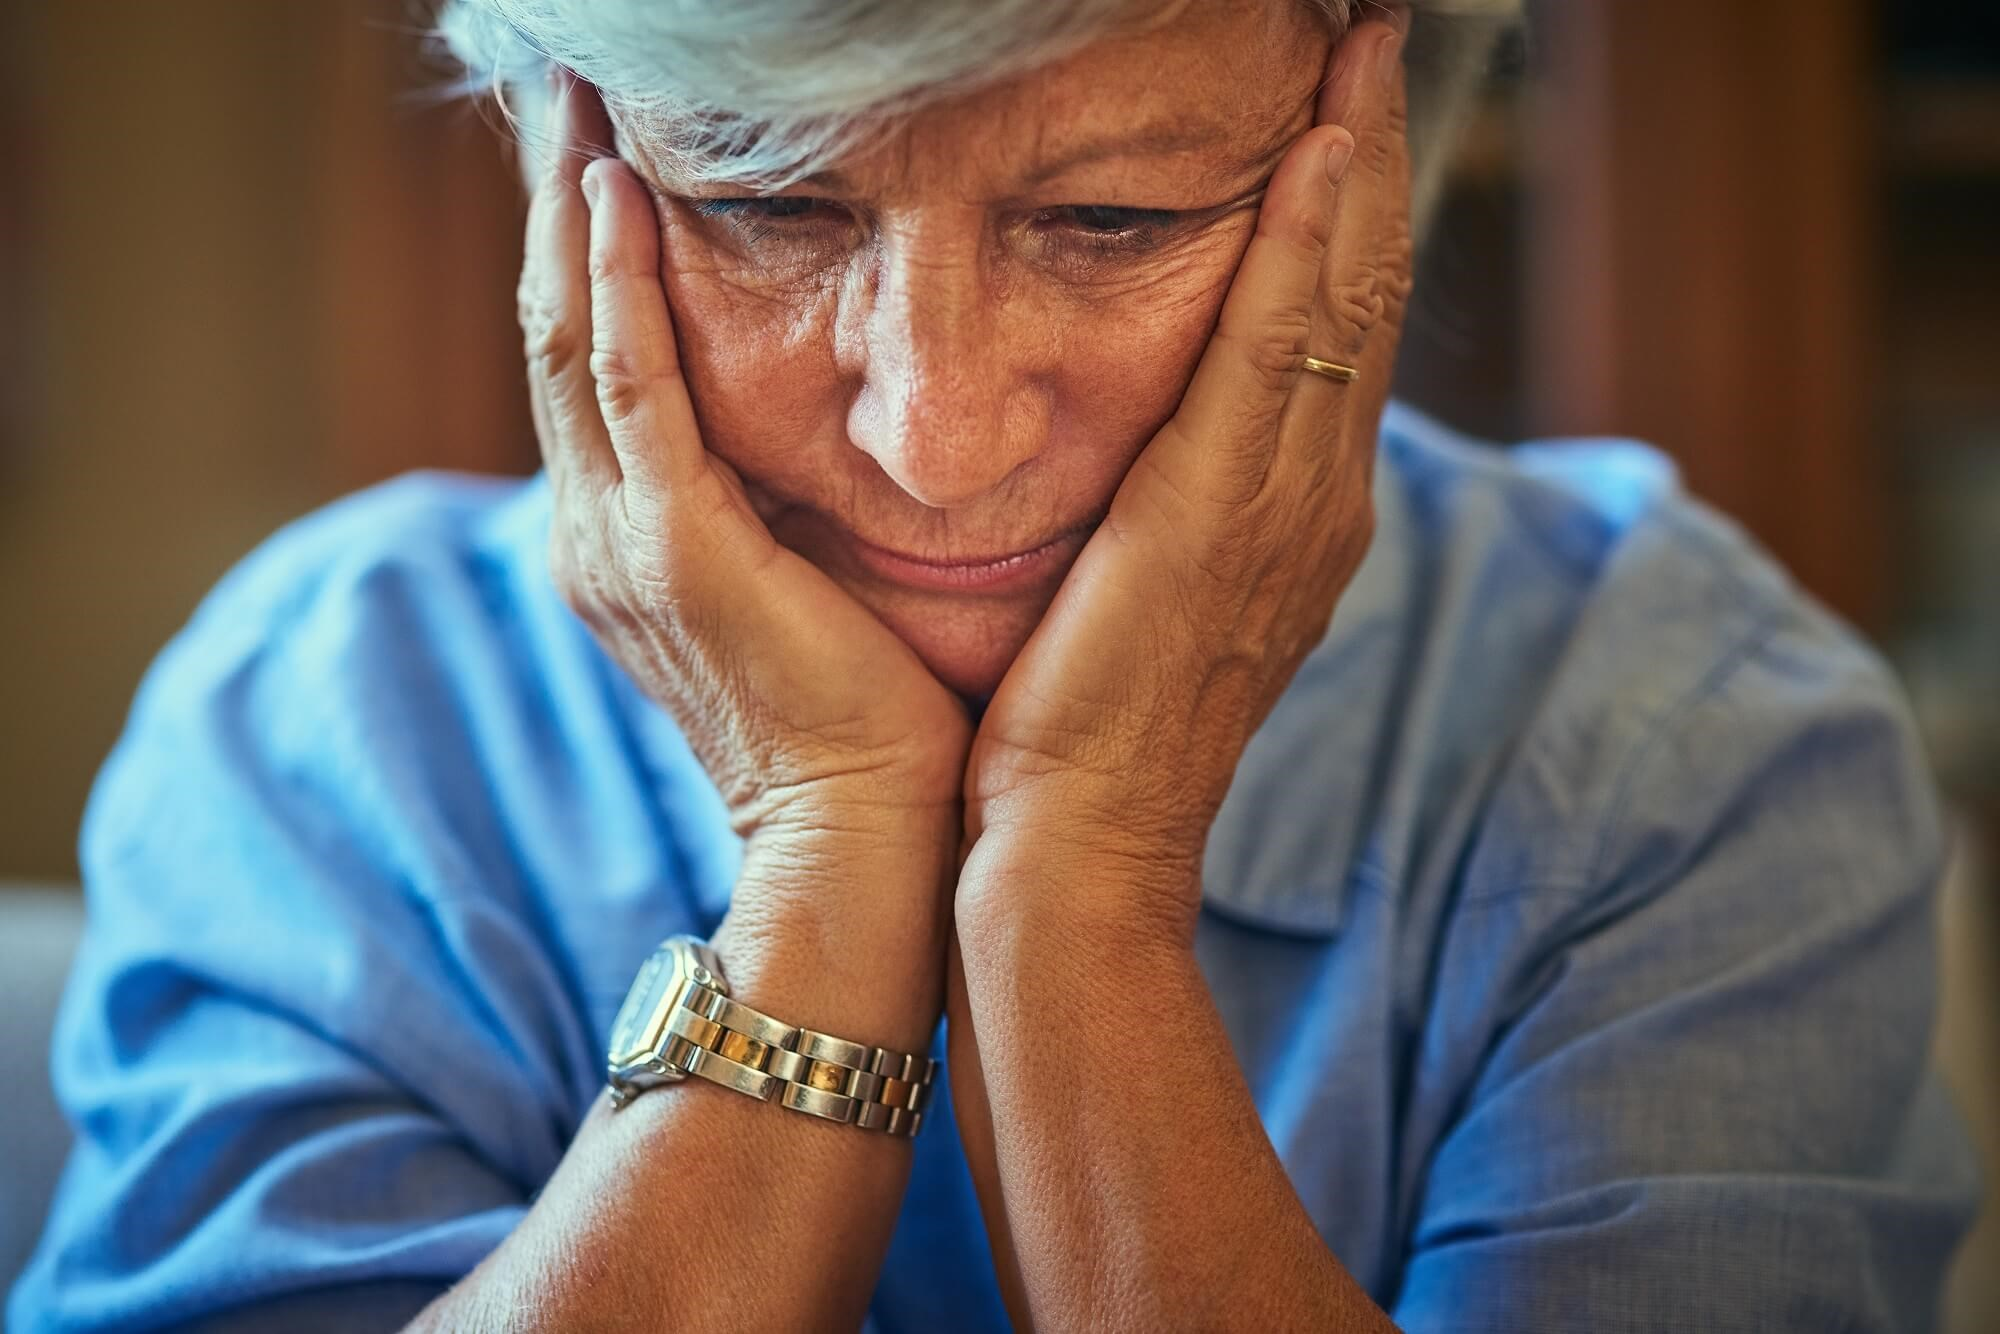 People with late-life depression had significantly fewer years of formal education compared with healthy controls.